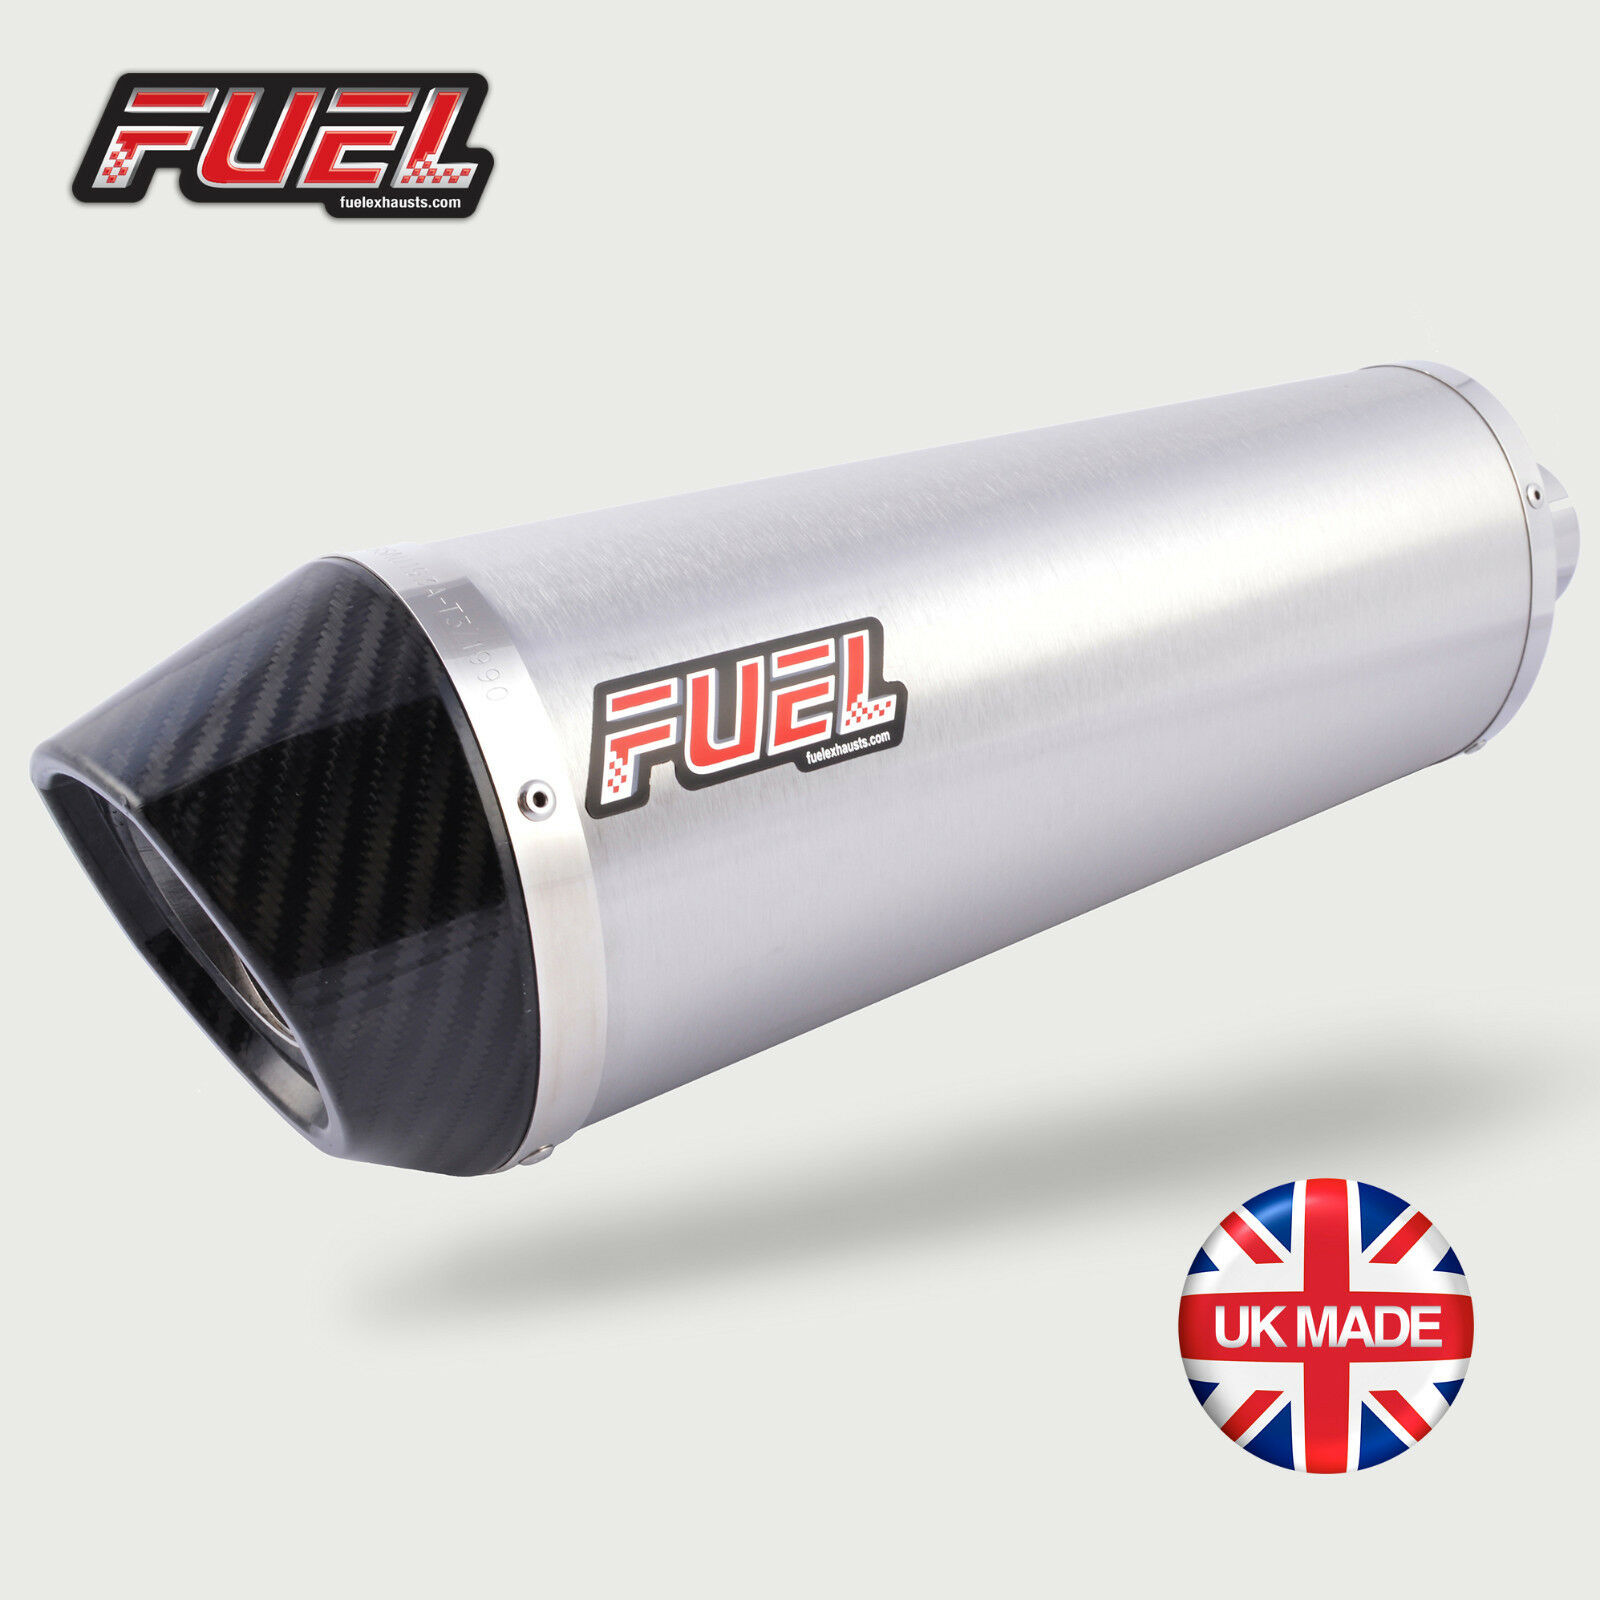 Honda VFR800 FI 98-01 Diablo Brushed S/S Oval Mini UK Street Legal Exhaust Can